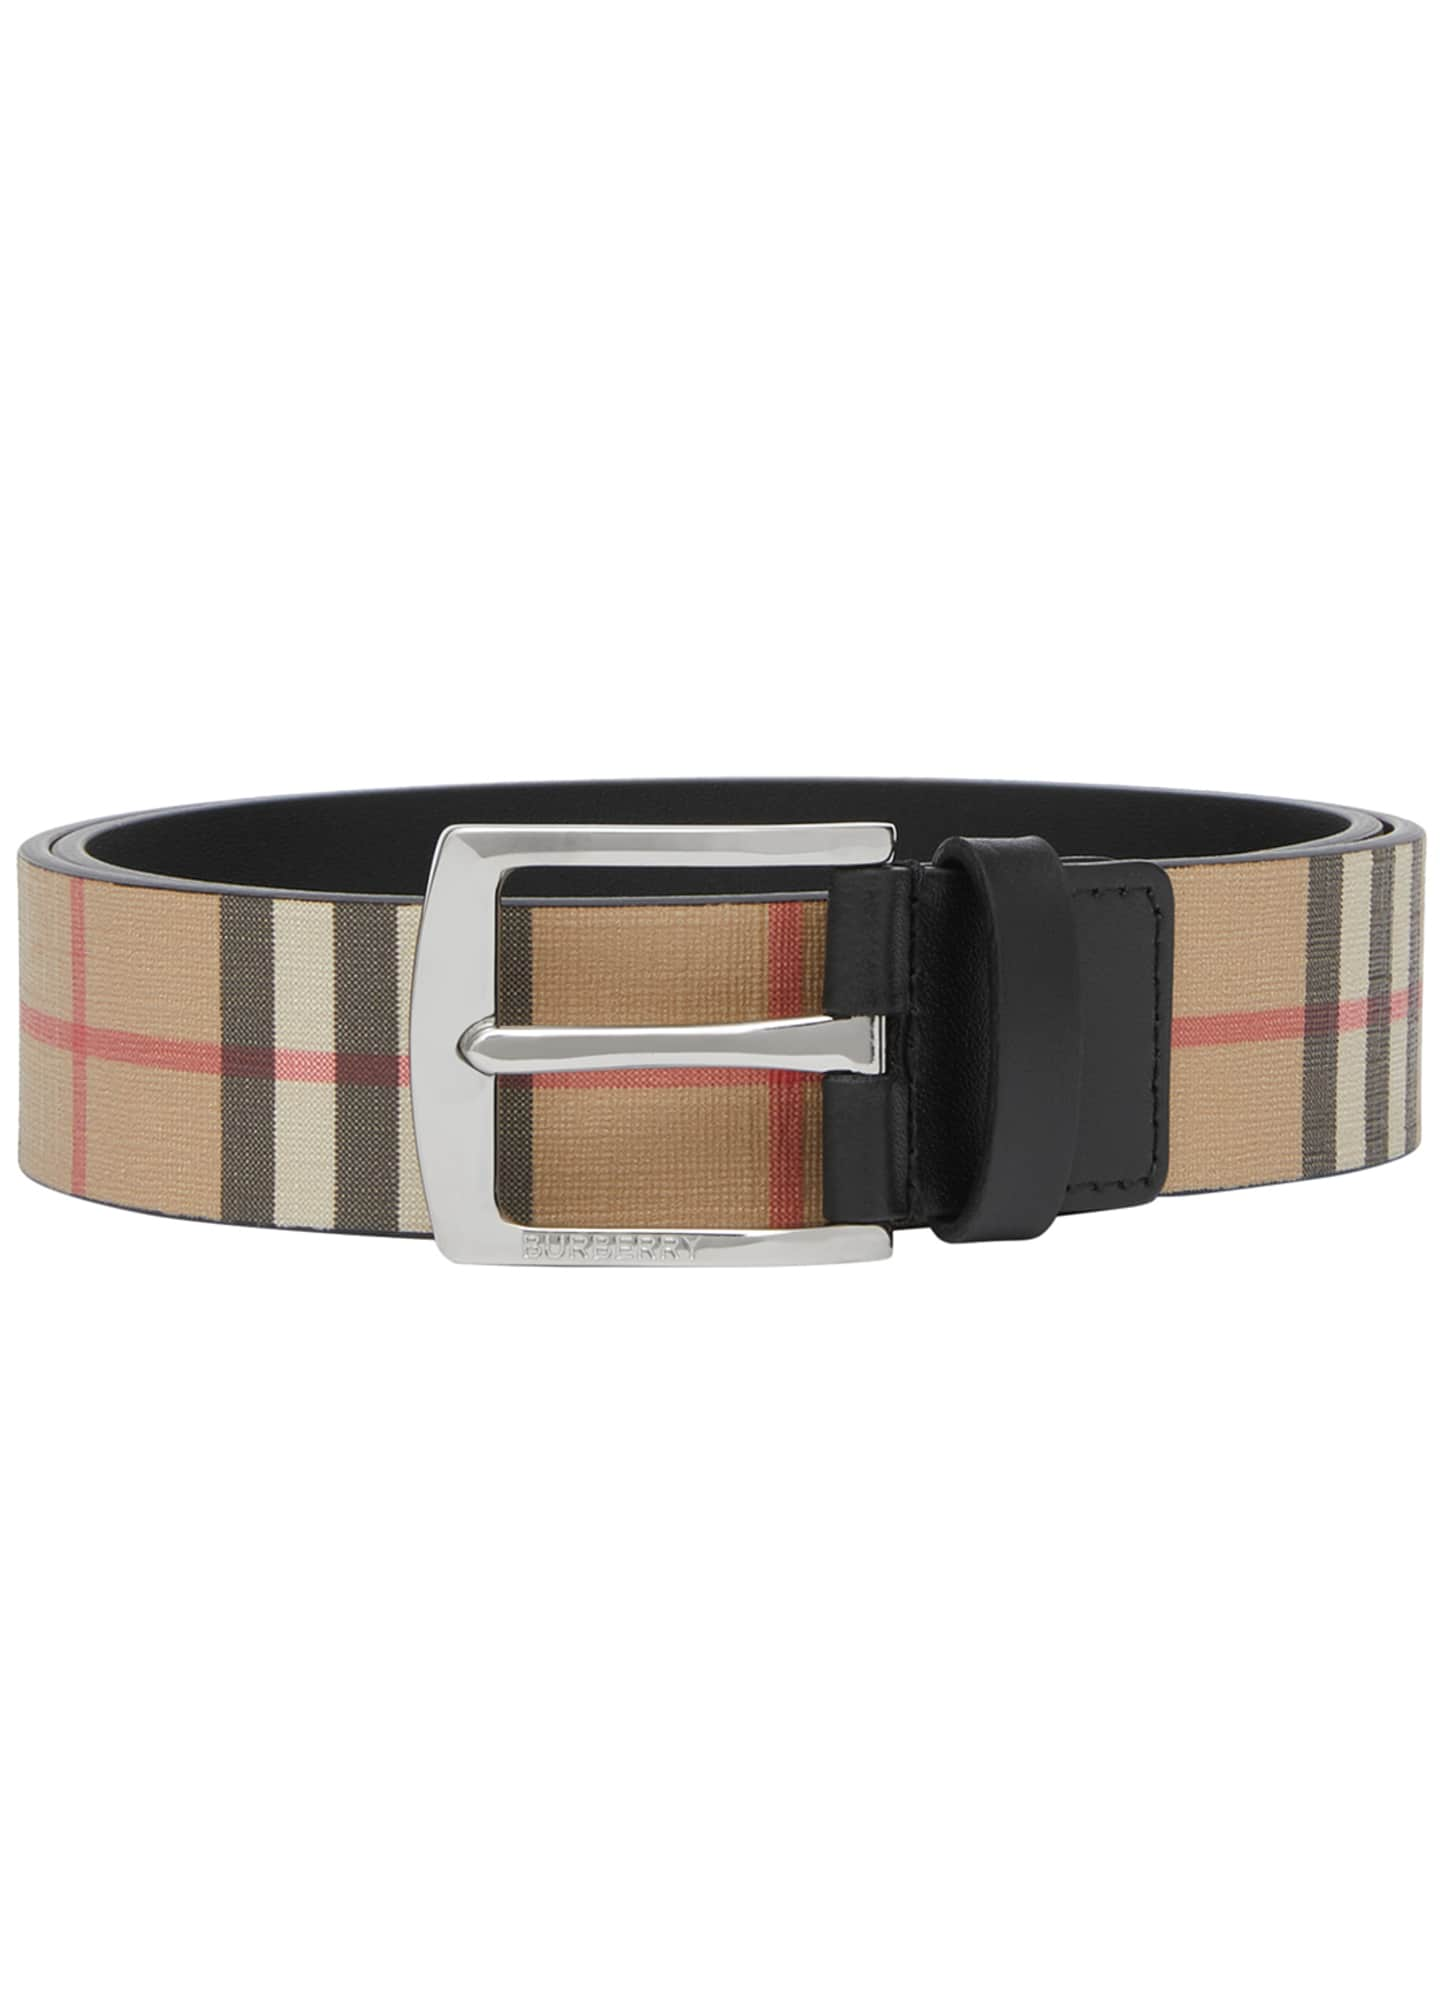 Burberry Men's Signature Check Leather Belt